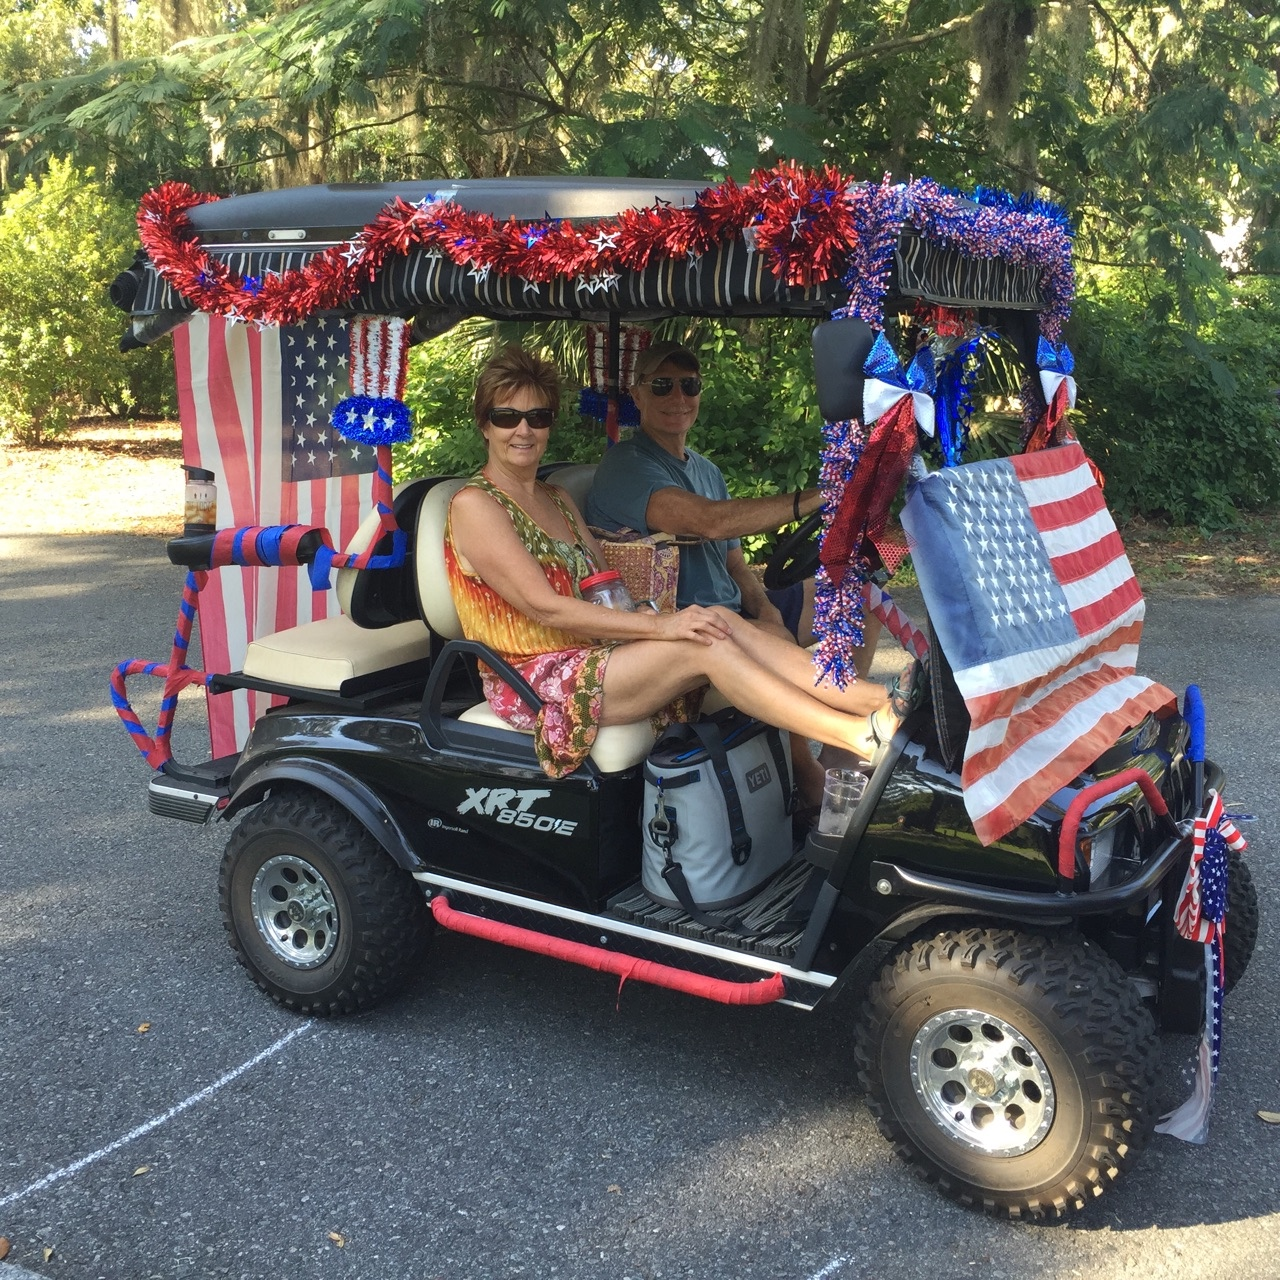 The 4th of July - Independence Day|positively jane